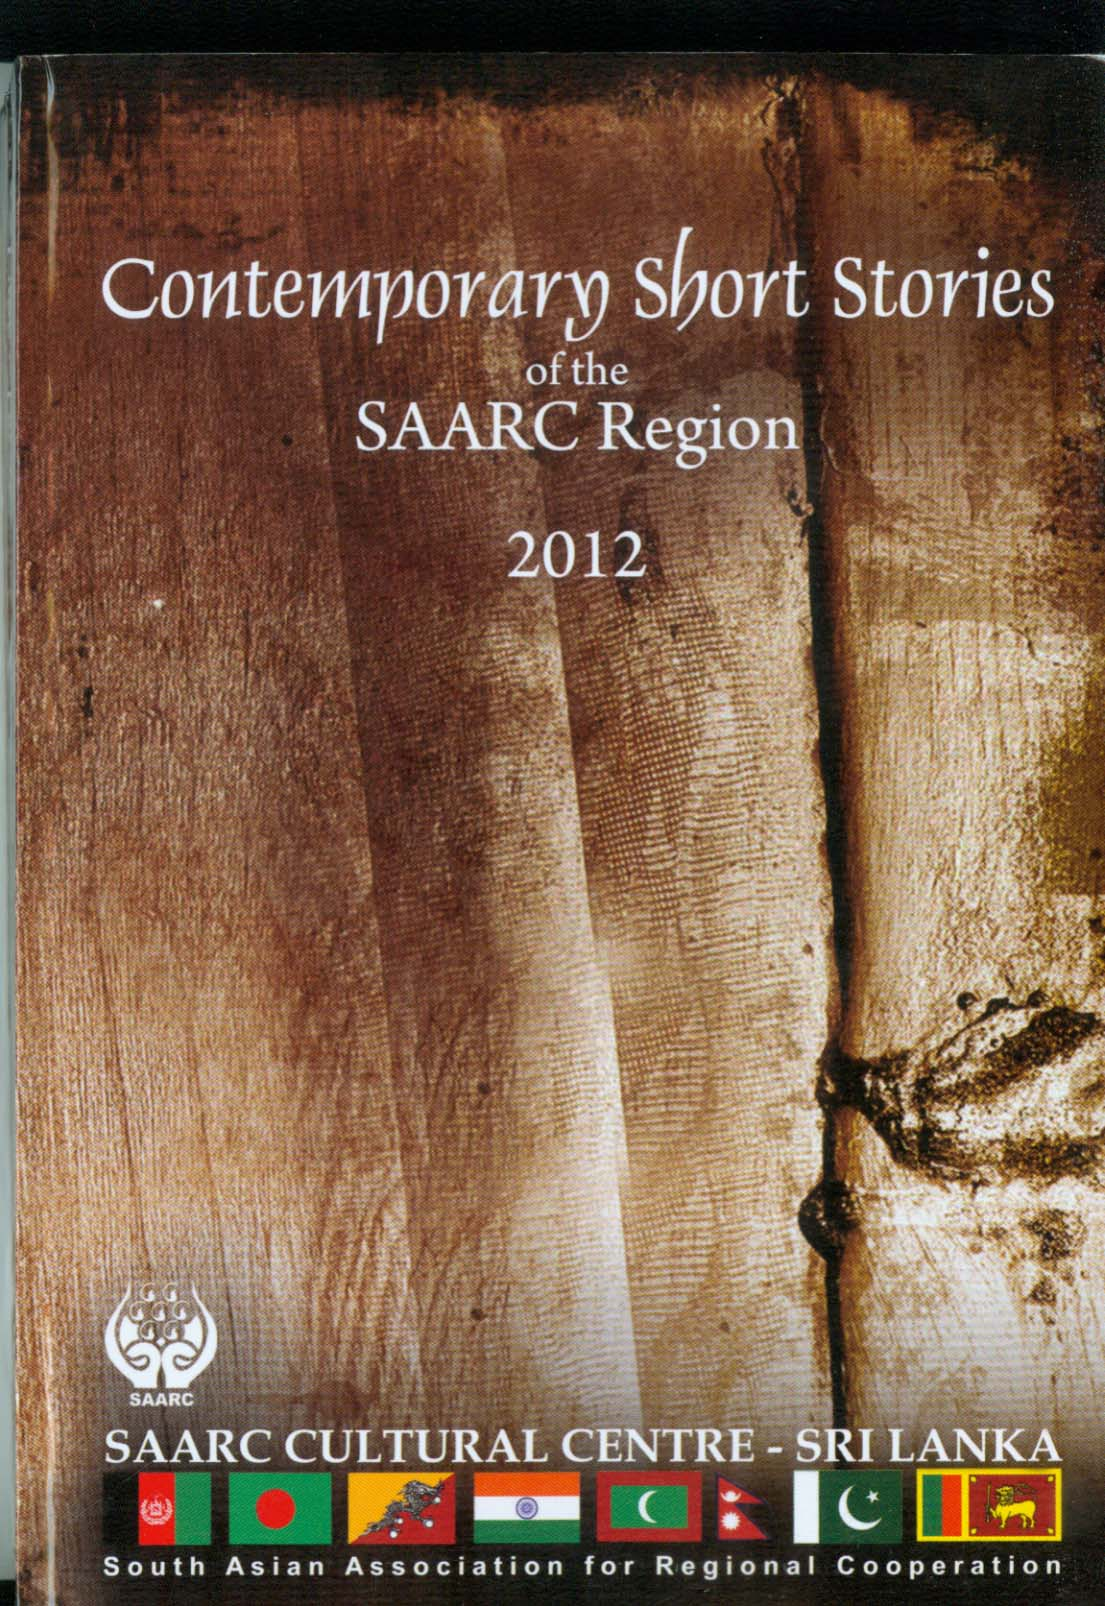 Contemporary Short Stories of the SAARC Region 2012 Image